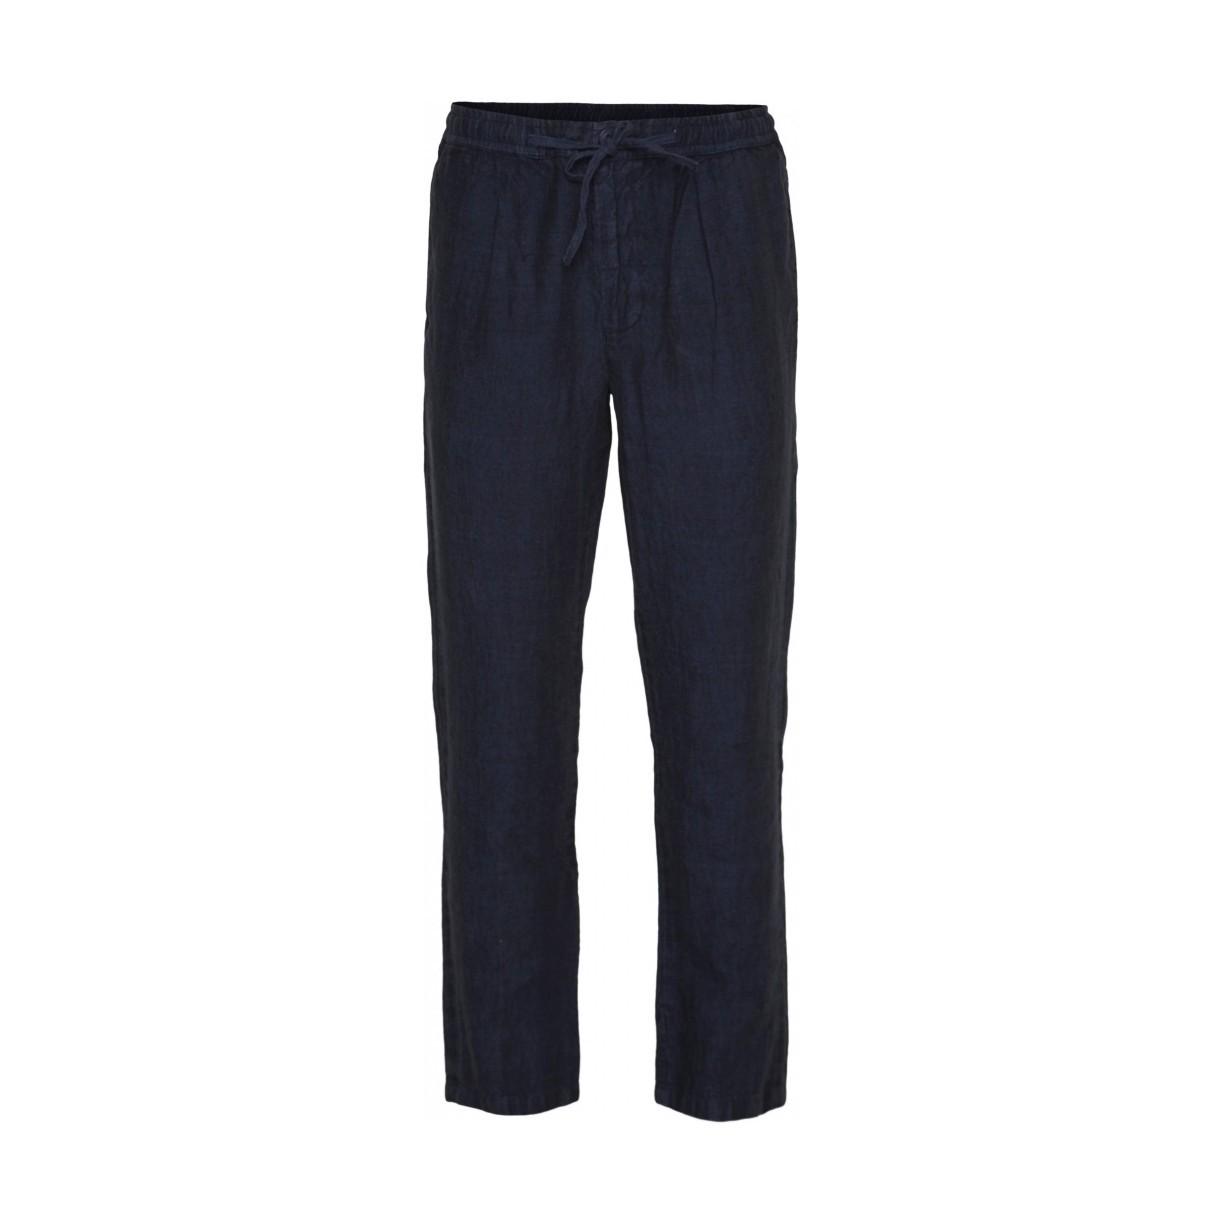 FIG loose linen pant Total Eclipse